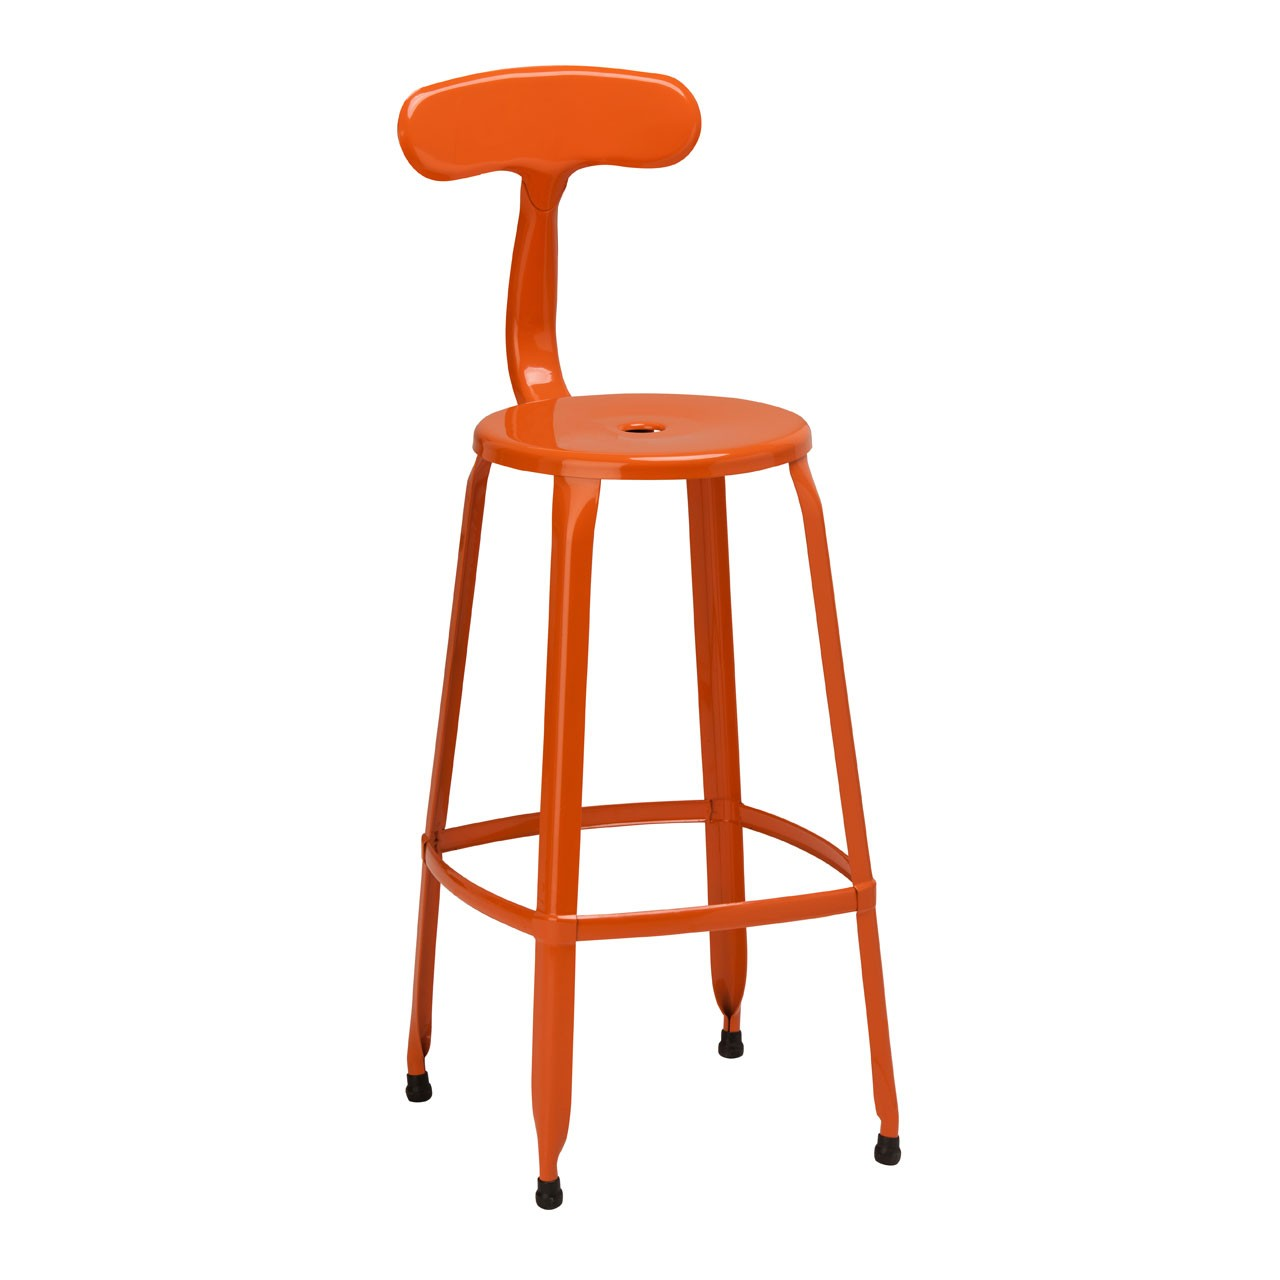 4 x Breakfast Chair Disc Bar Chair Powder Coated Metal Orange